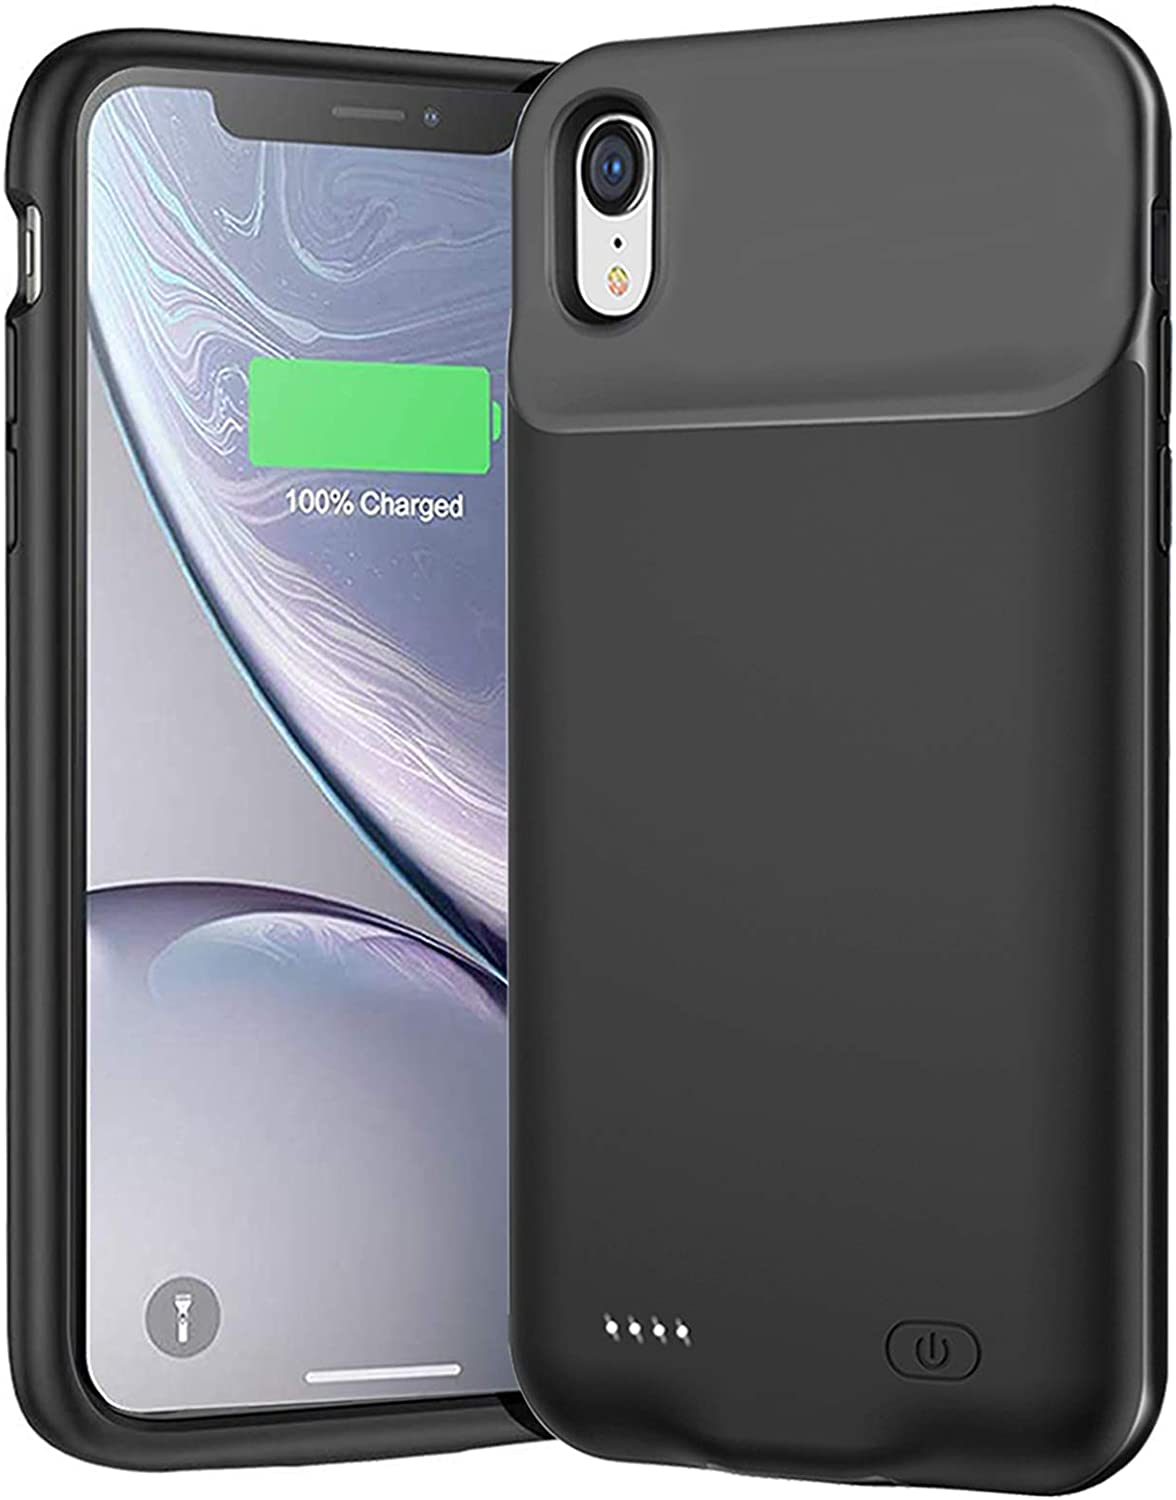 Battery Case for iPhone XR, Newest 7000mAh Slim Portable Protective Charging case Compatible with iPhone XR (6.1 inch) Rechargeable Battery Pack Charger Case (Black)